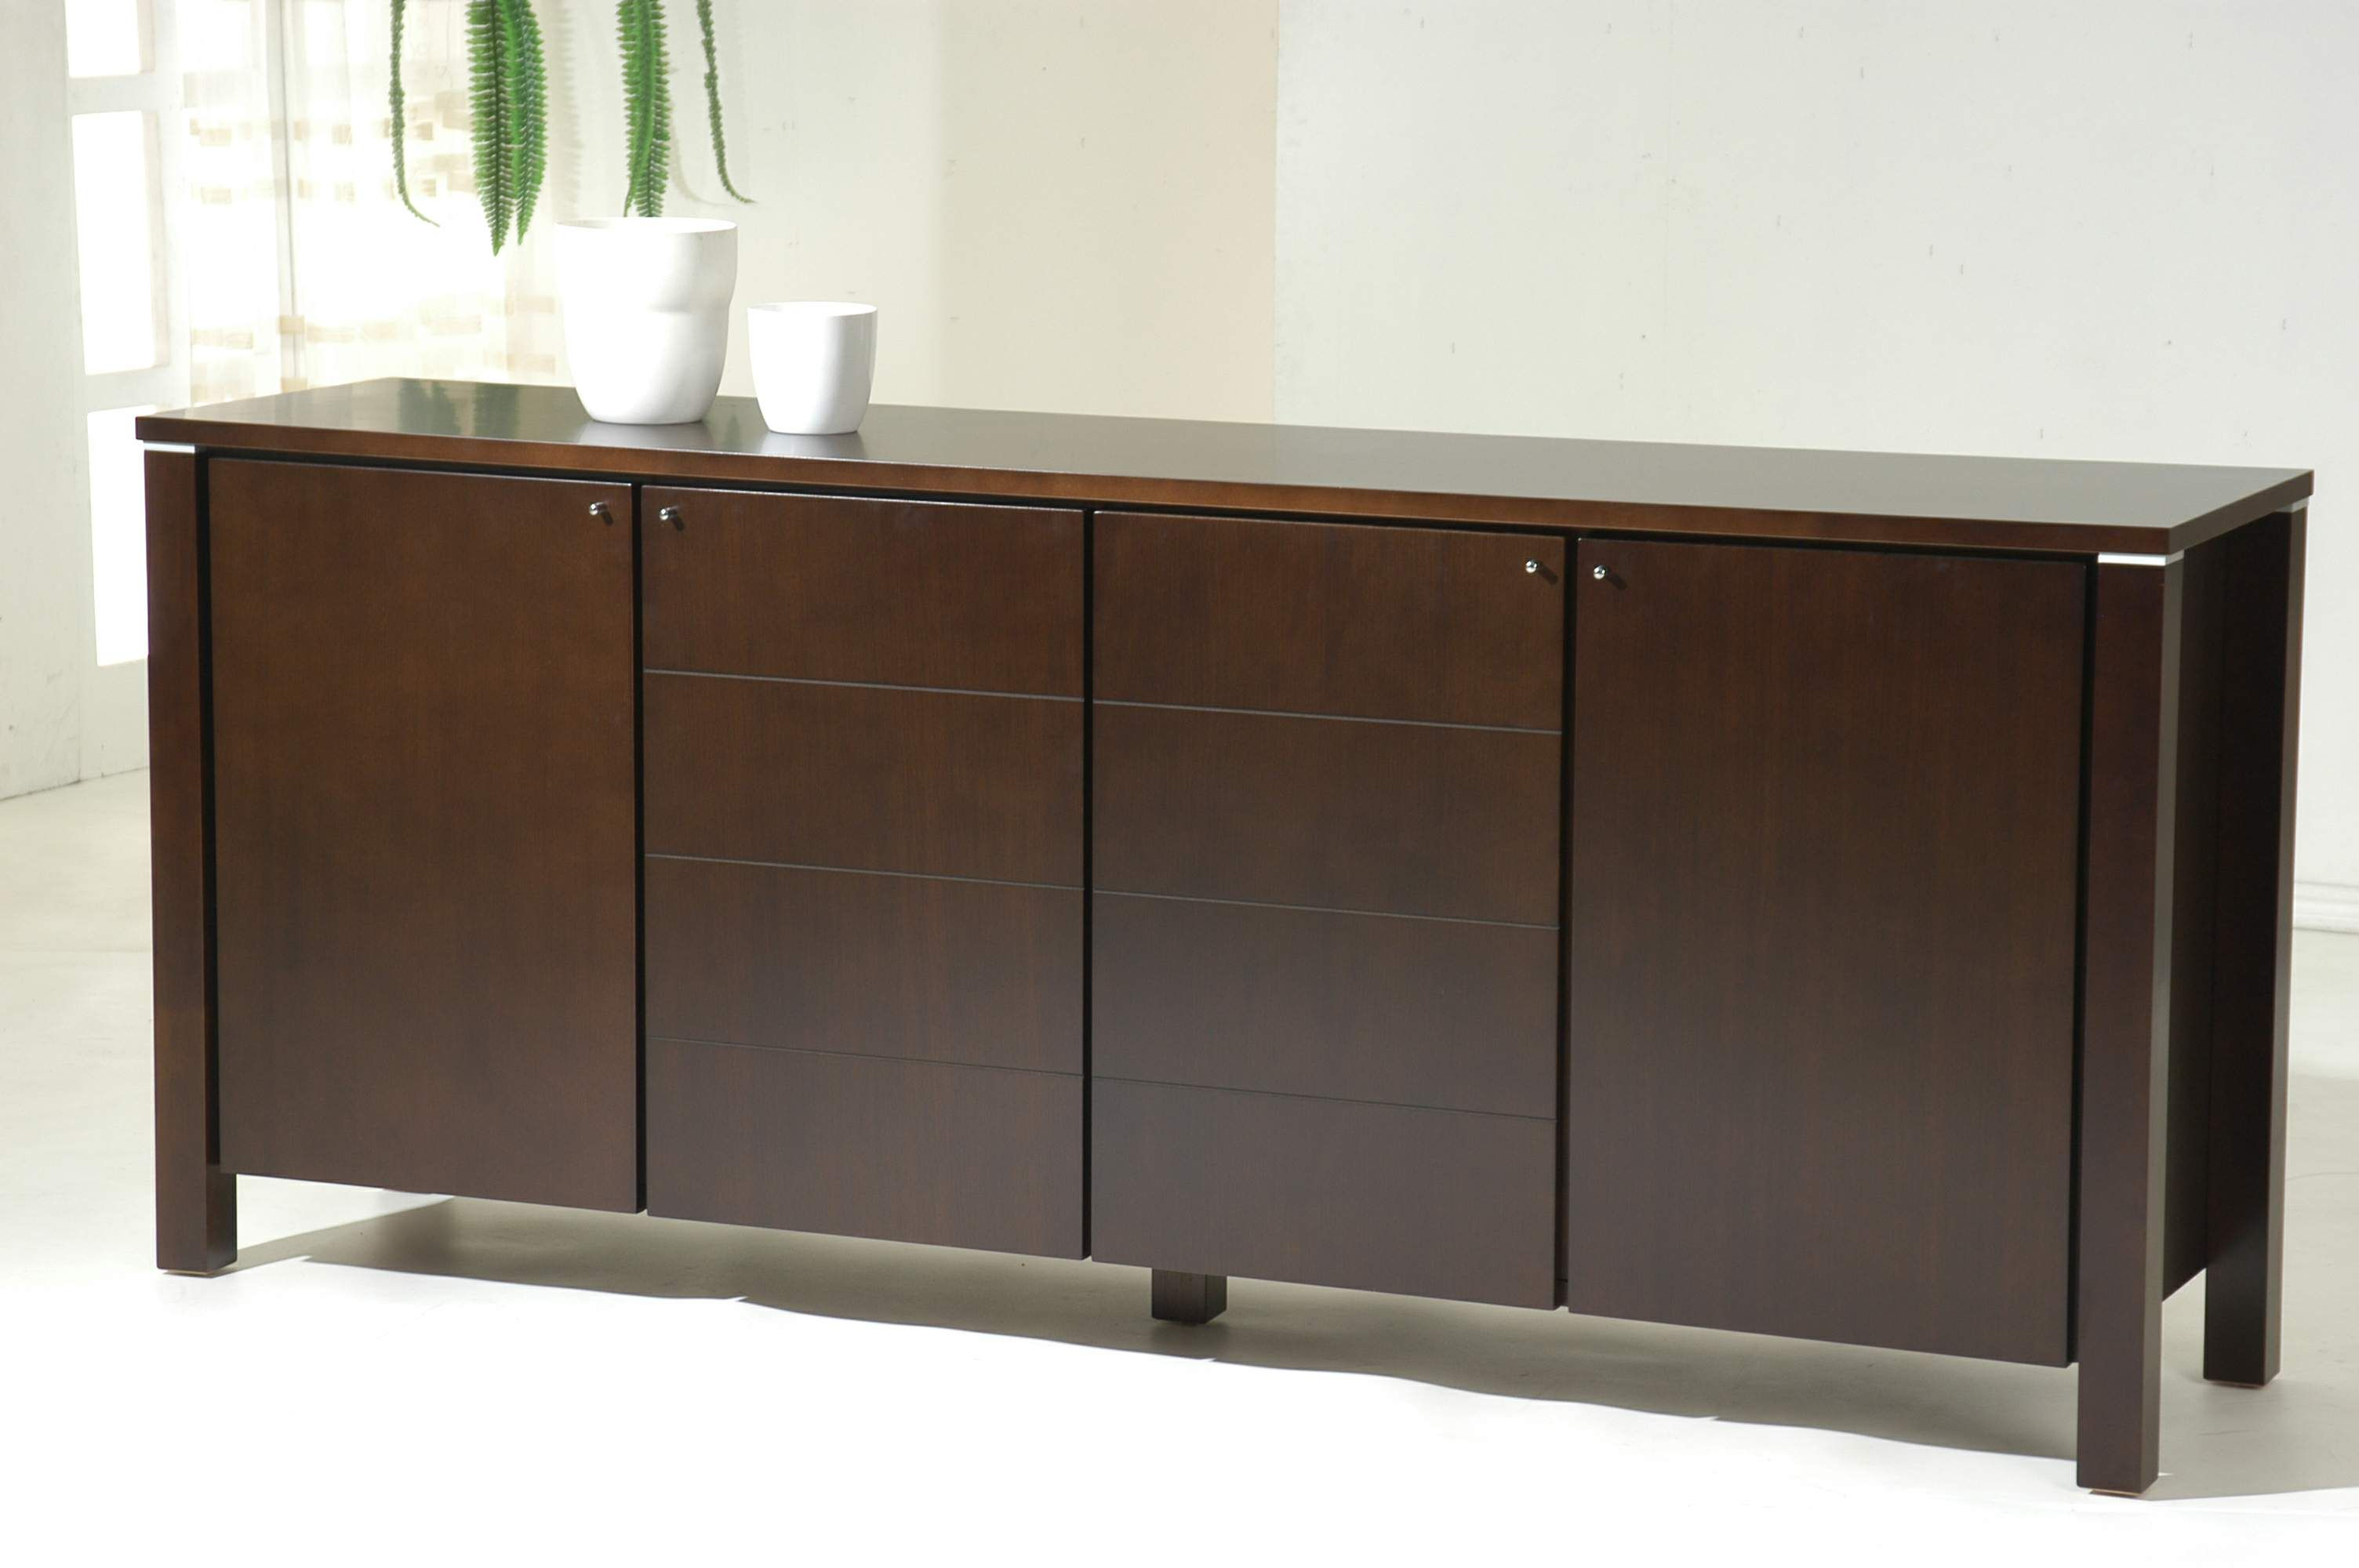 Side Cabinet Google Search Efficient Living Pinterest Rustic Walnut Sideboard For Dining Room